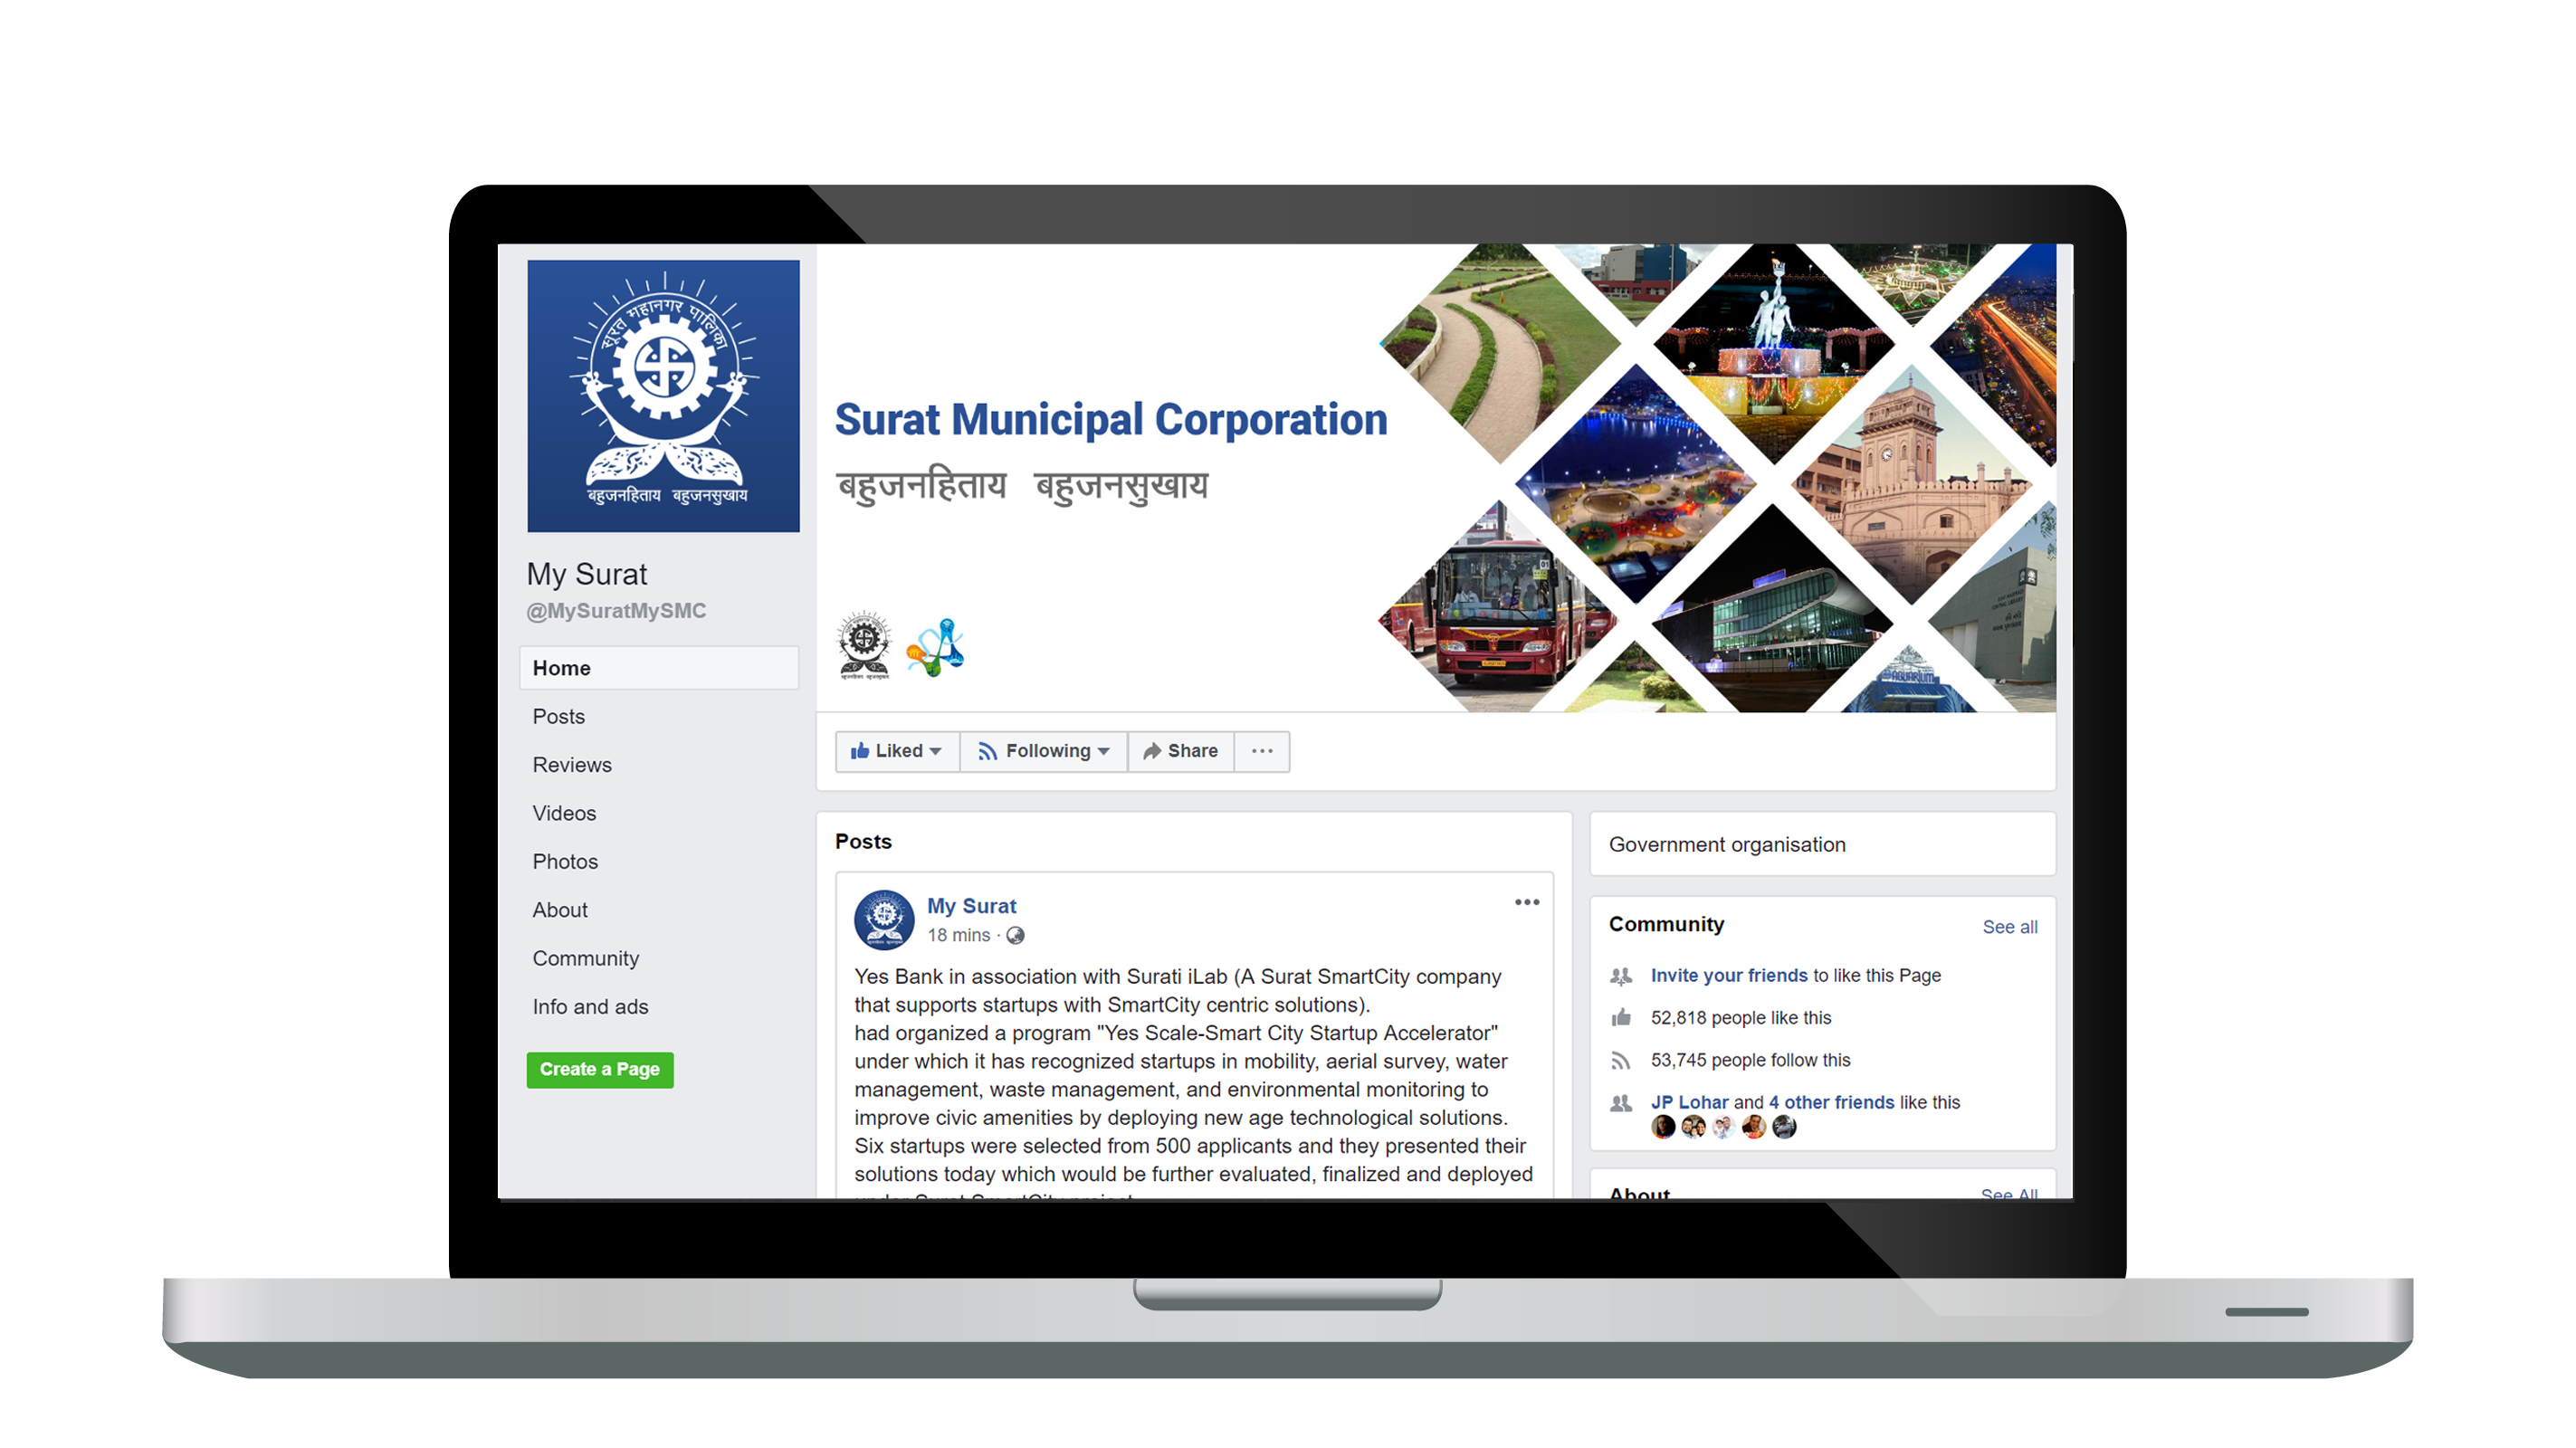 SURAT MUNICIPAL CORPORATION – SMC